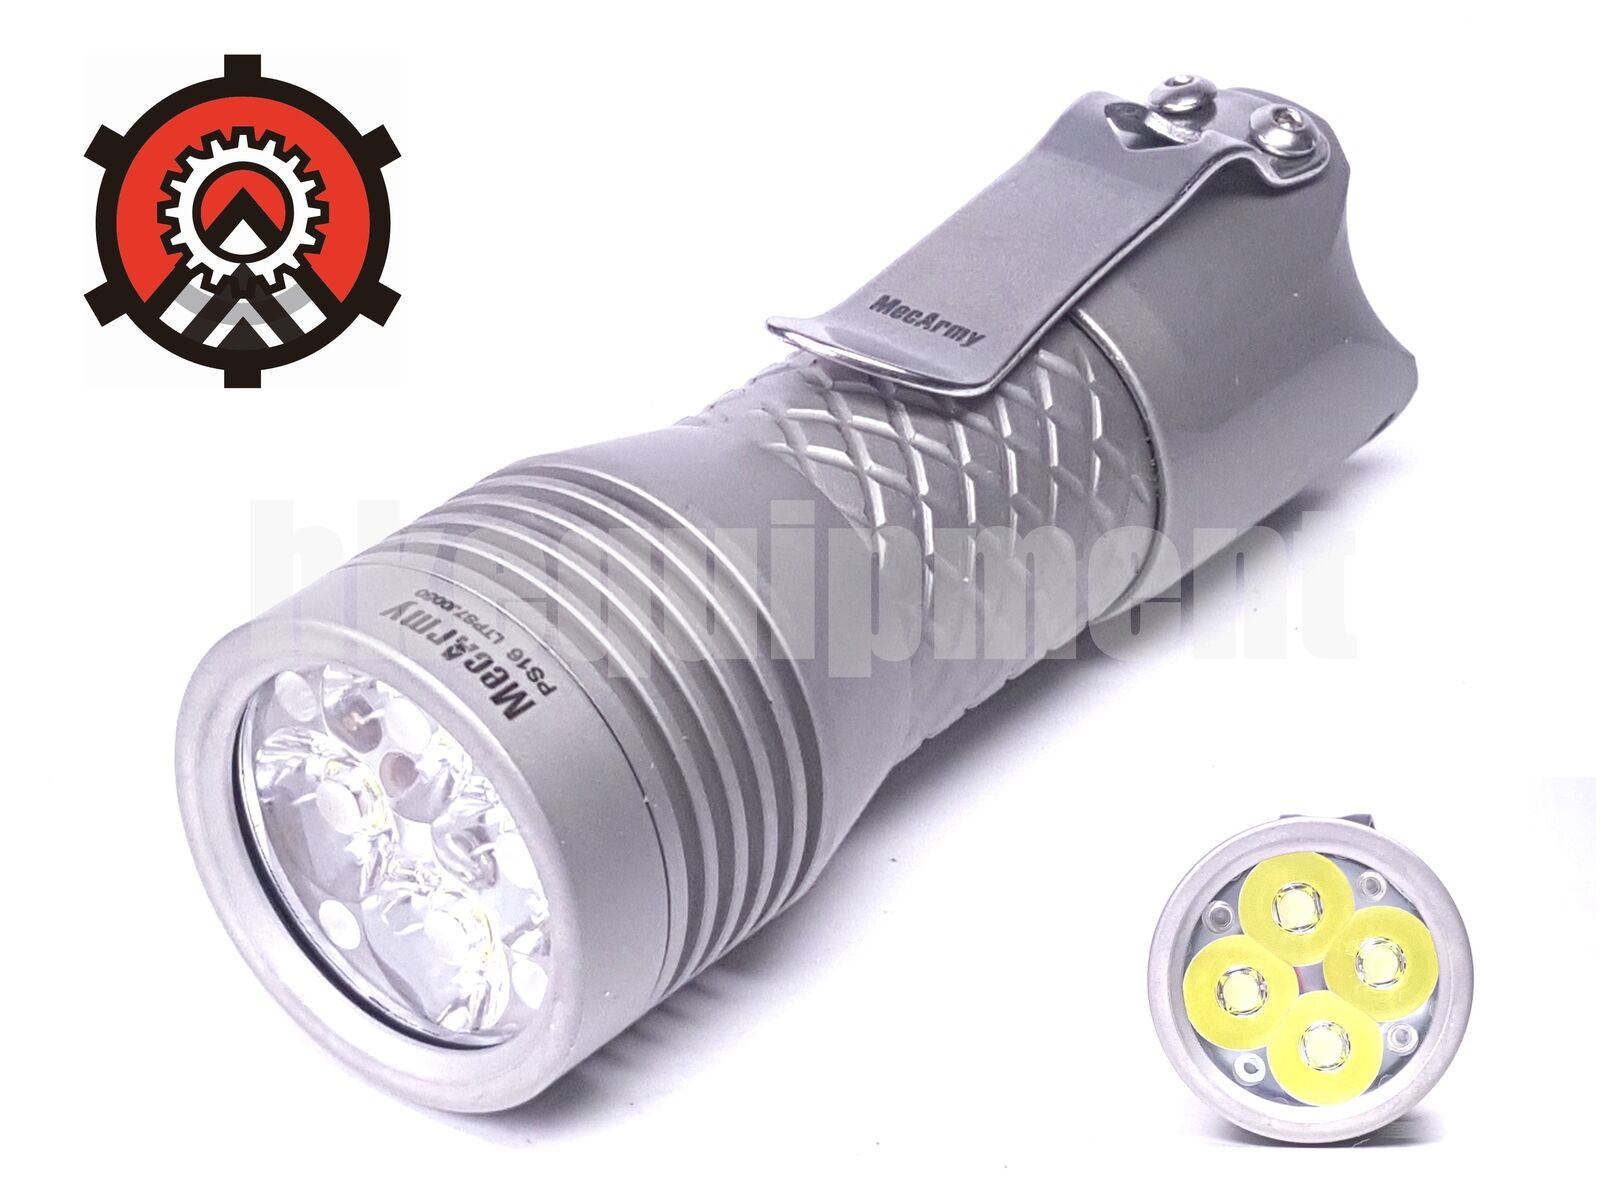 Mecarmy PS16 4x Cree XP-G3 S5 2000lm Torch Matt+USB Rechargeable Battery